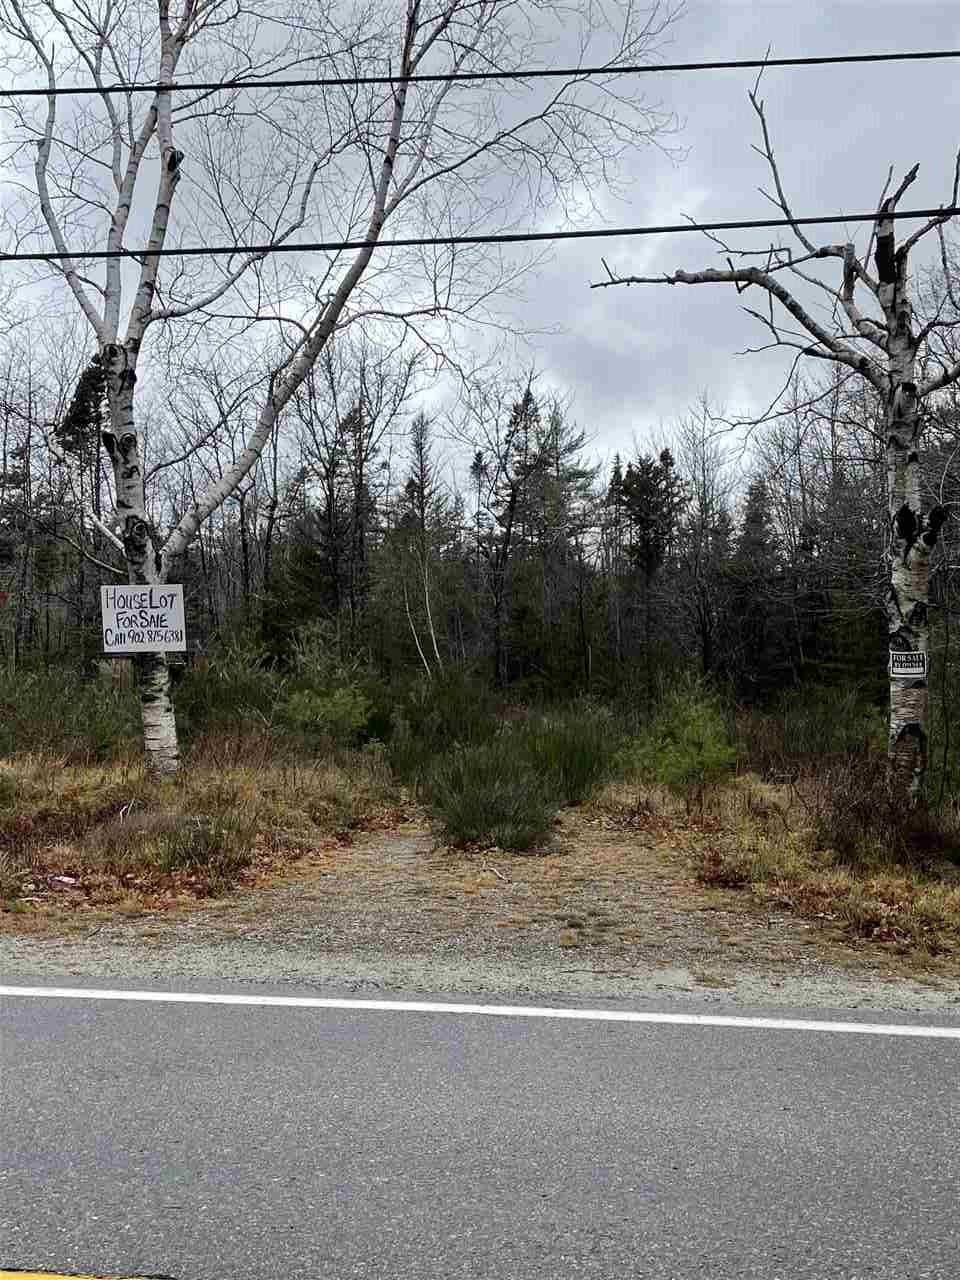 Main Photo: 787 Woodlawn Drive in Jordan Falls: 407-Shelburne County Vacant Land for sale (South Shore)  : MLS®# 202025701